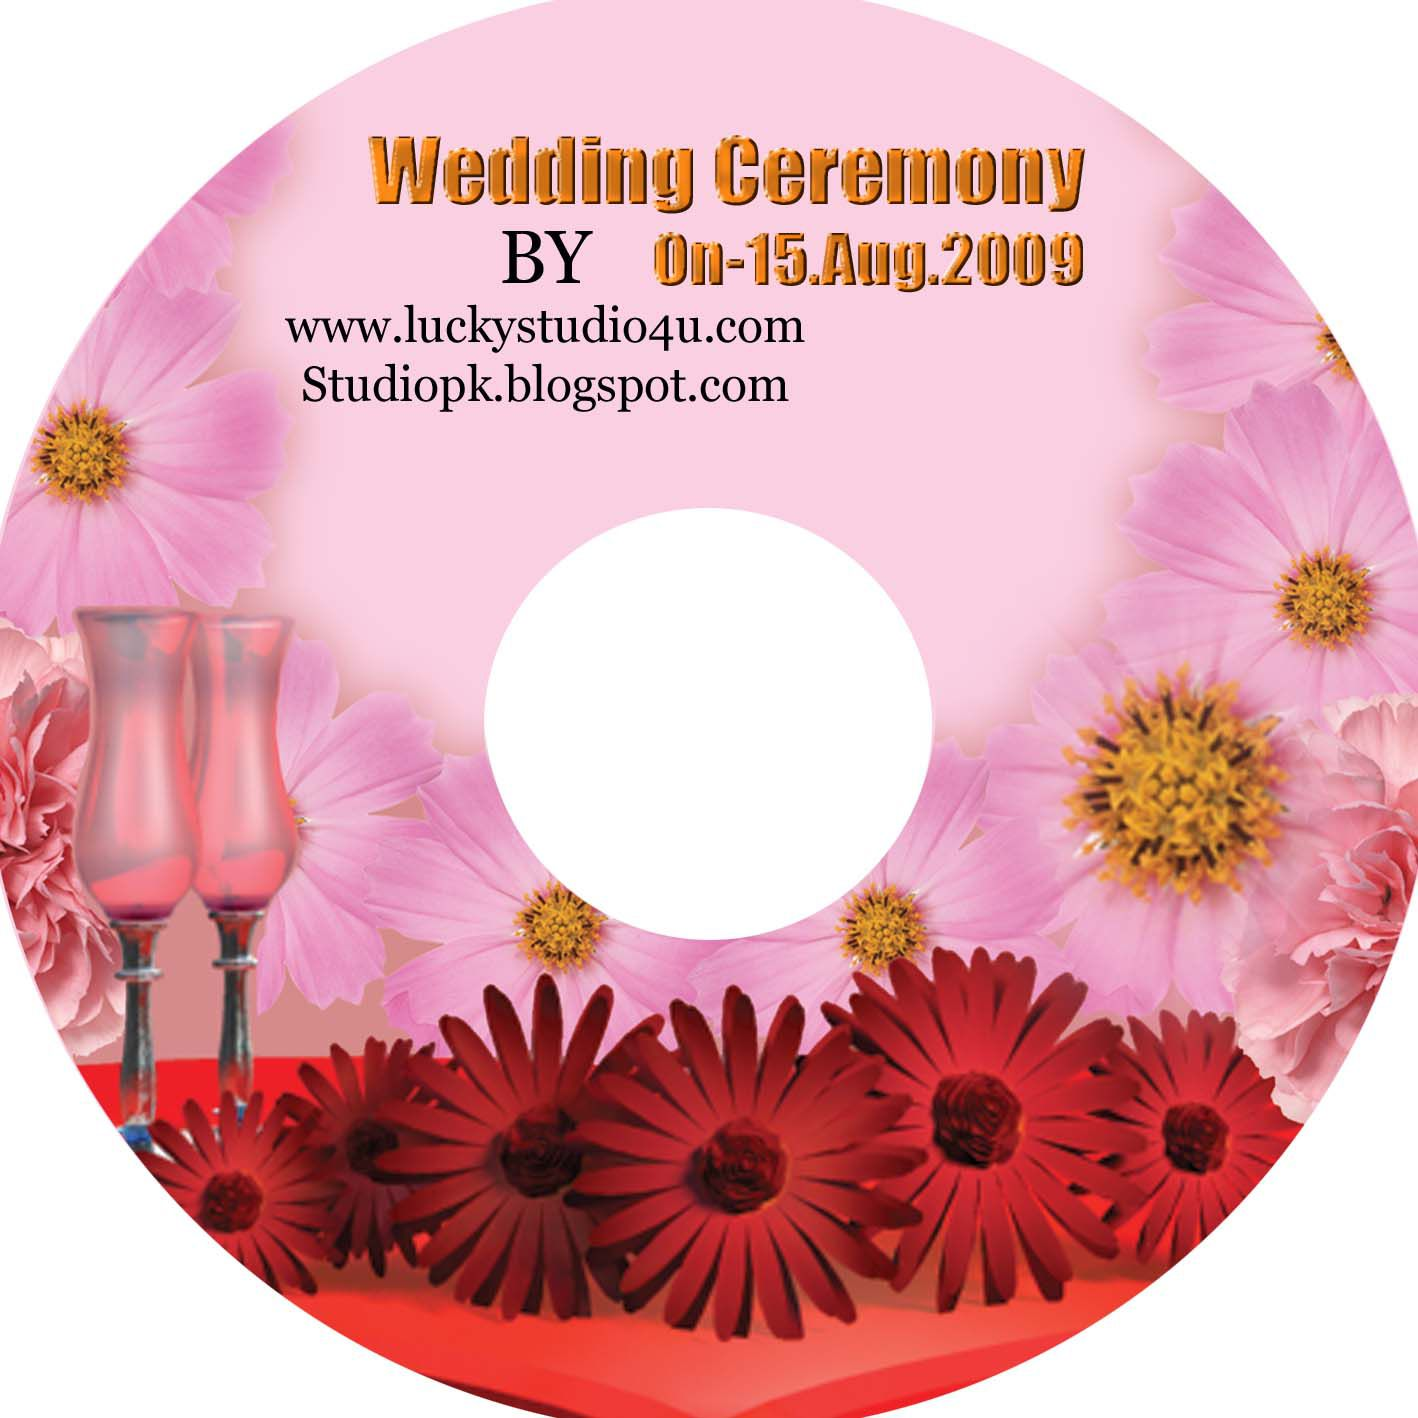 002 Amazing Wedding Cd Cover Design Template Free Download High Resolution Full